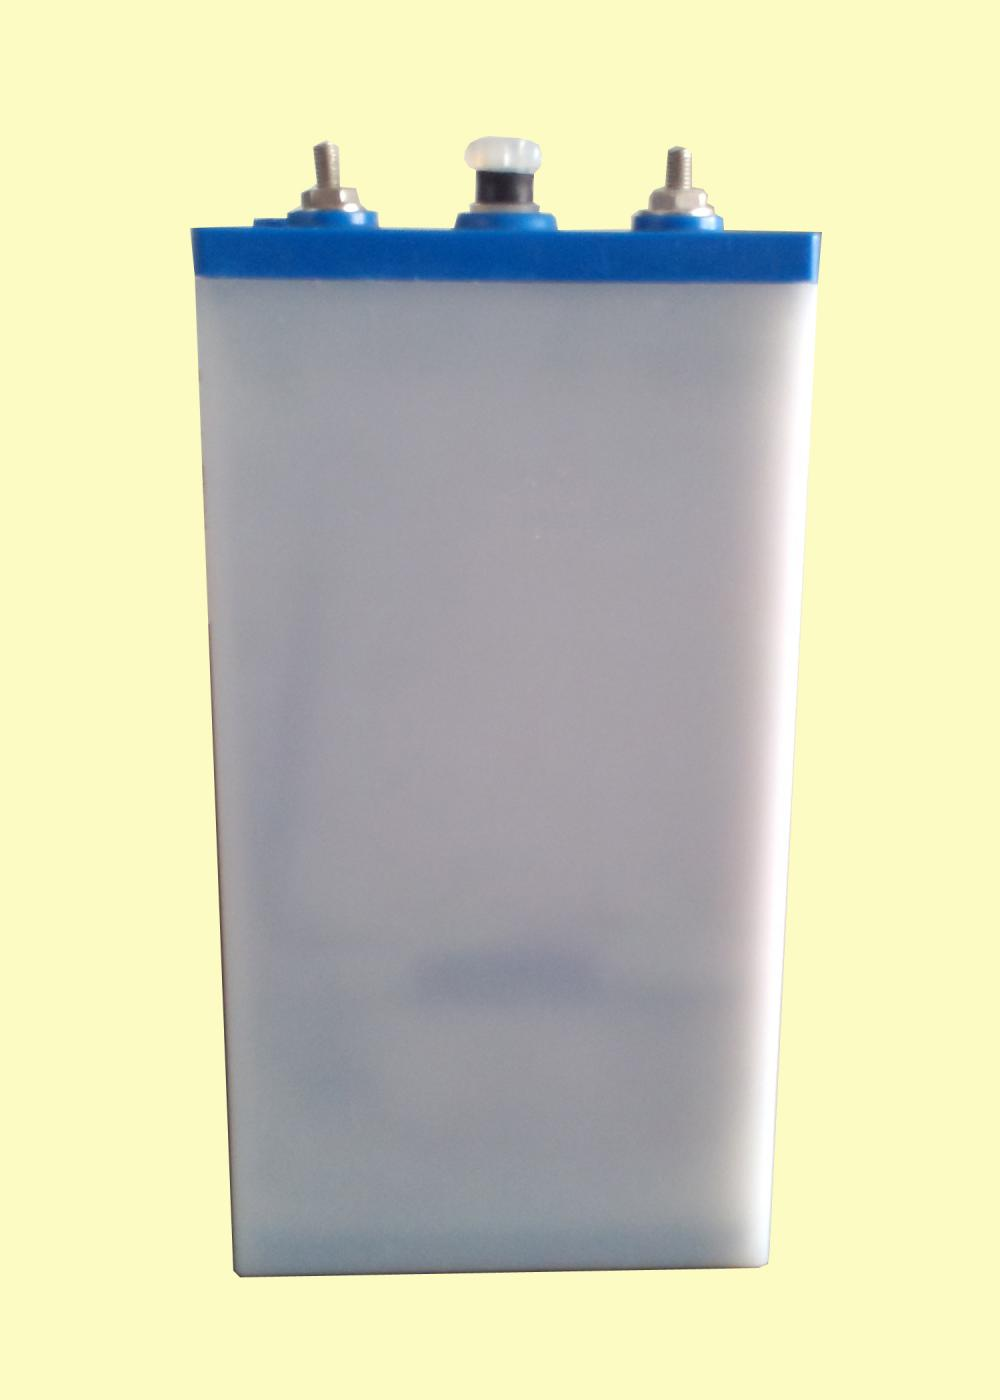 low rate 22ah nickel cadmium battery KPL22